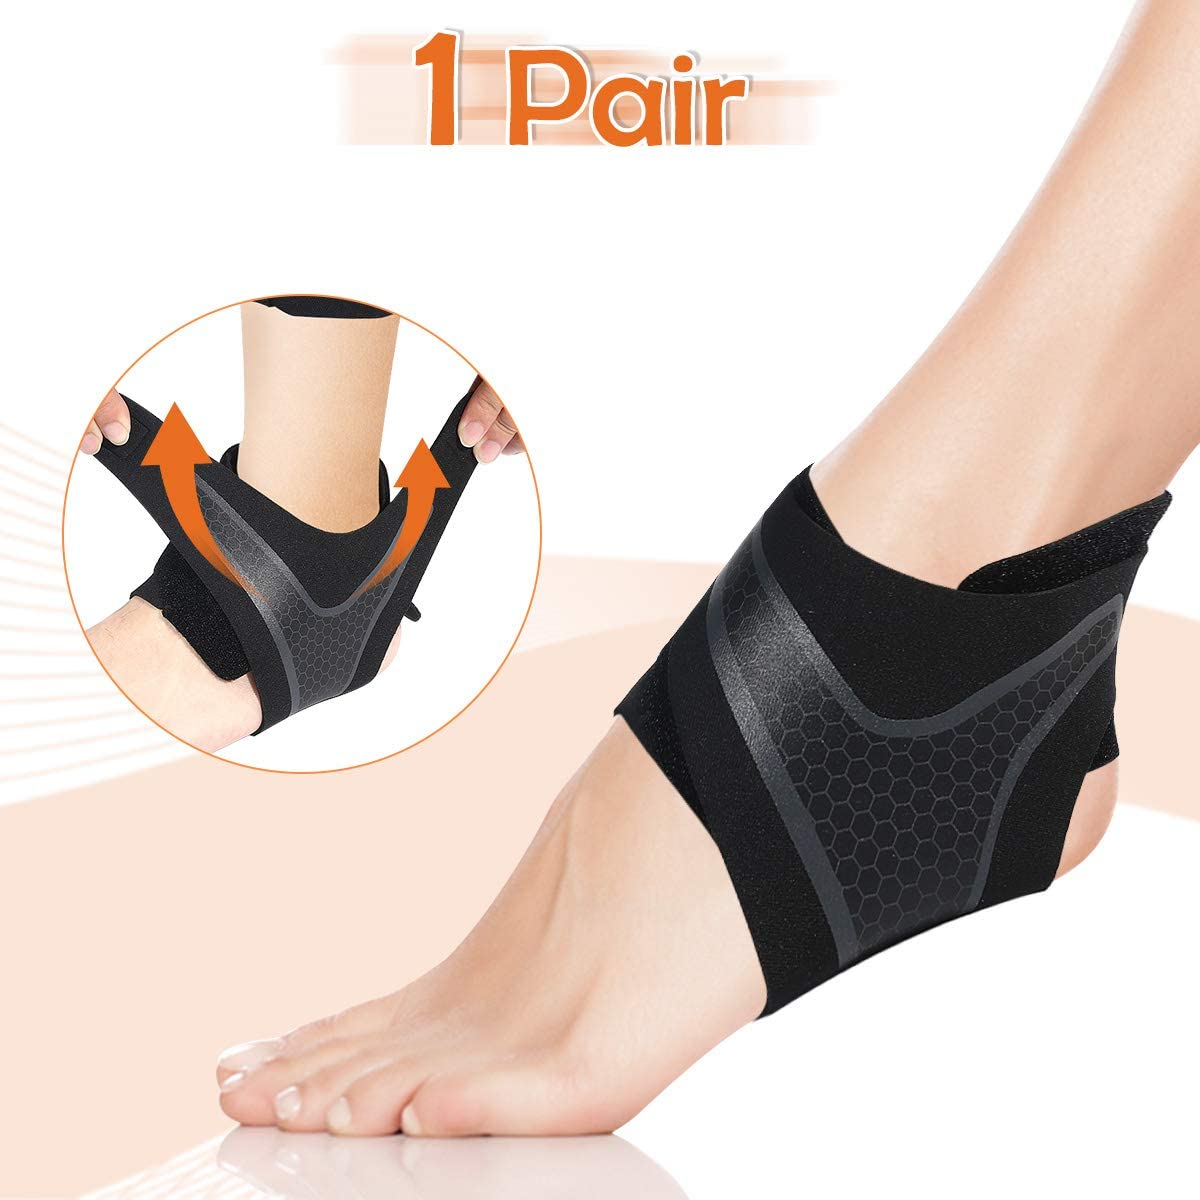 2 Pack Ankle Compression Brace Stabilizer Ankle Sprained Recovery Adjustable for Plantar Fasciitis Swelling Pain Men and Women Running Basketball CHARMINER Ankle Support Brace